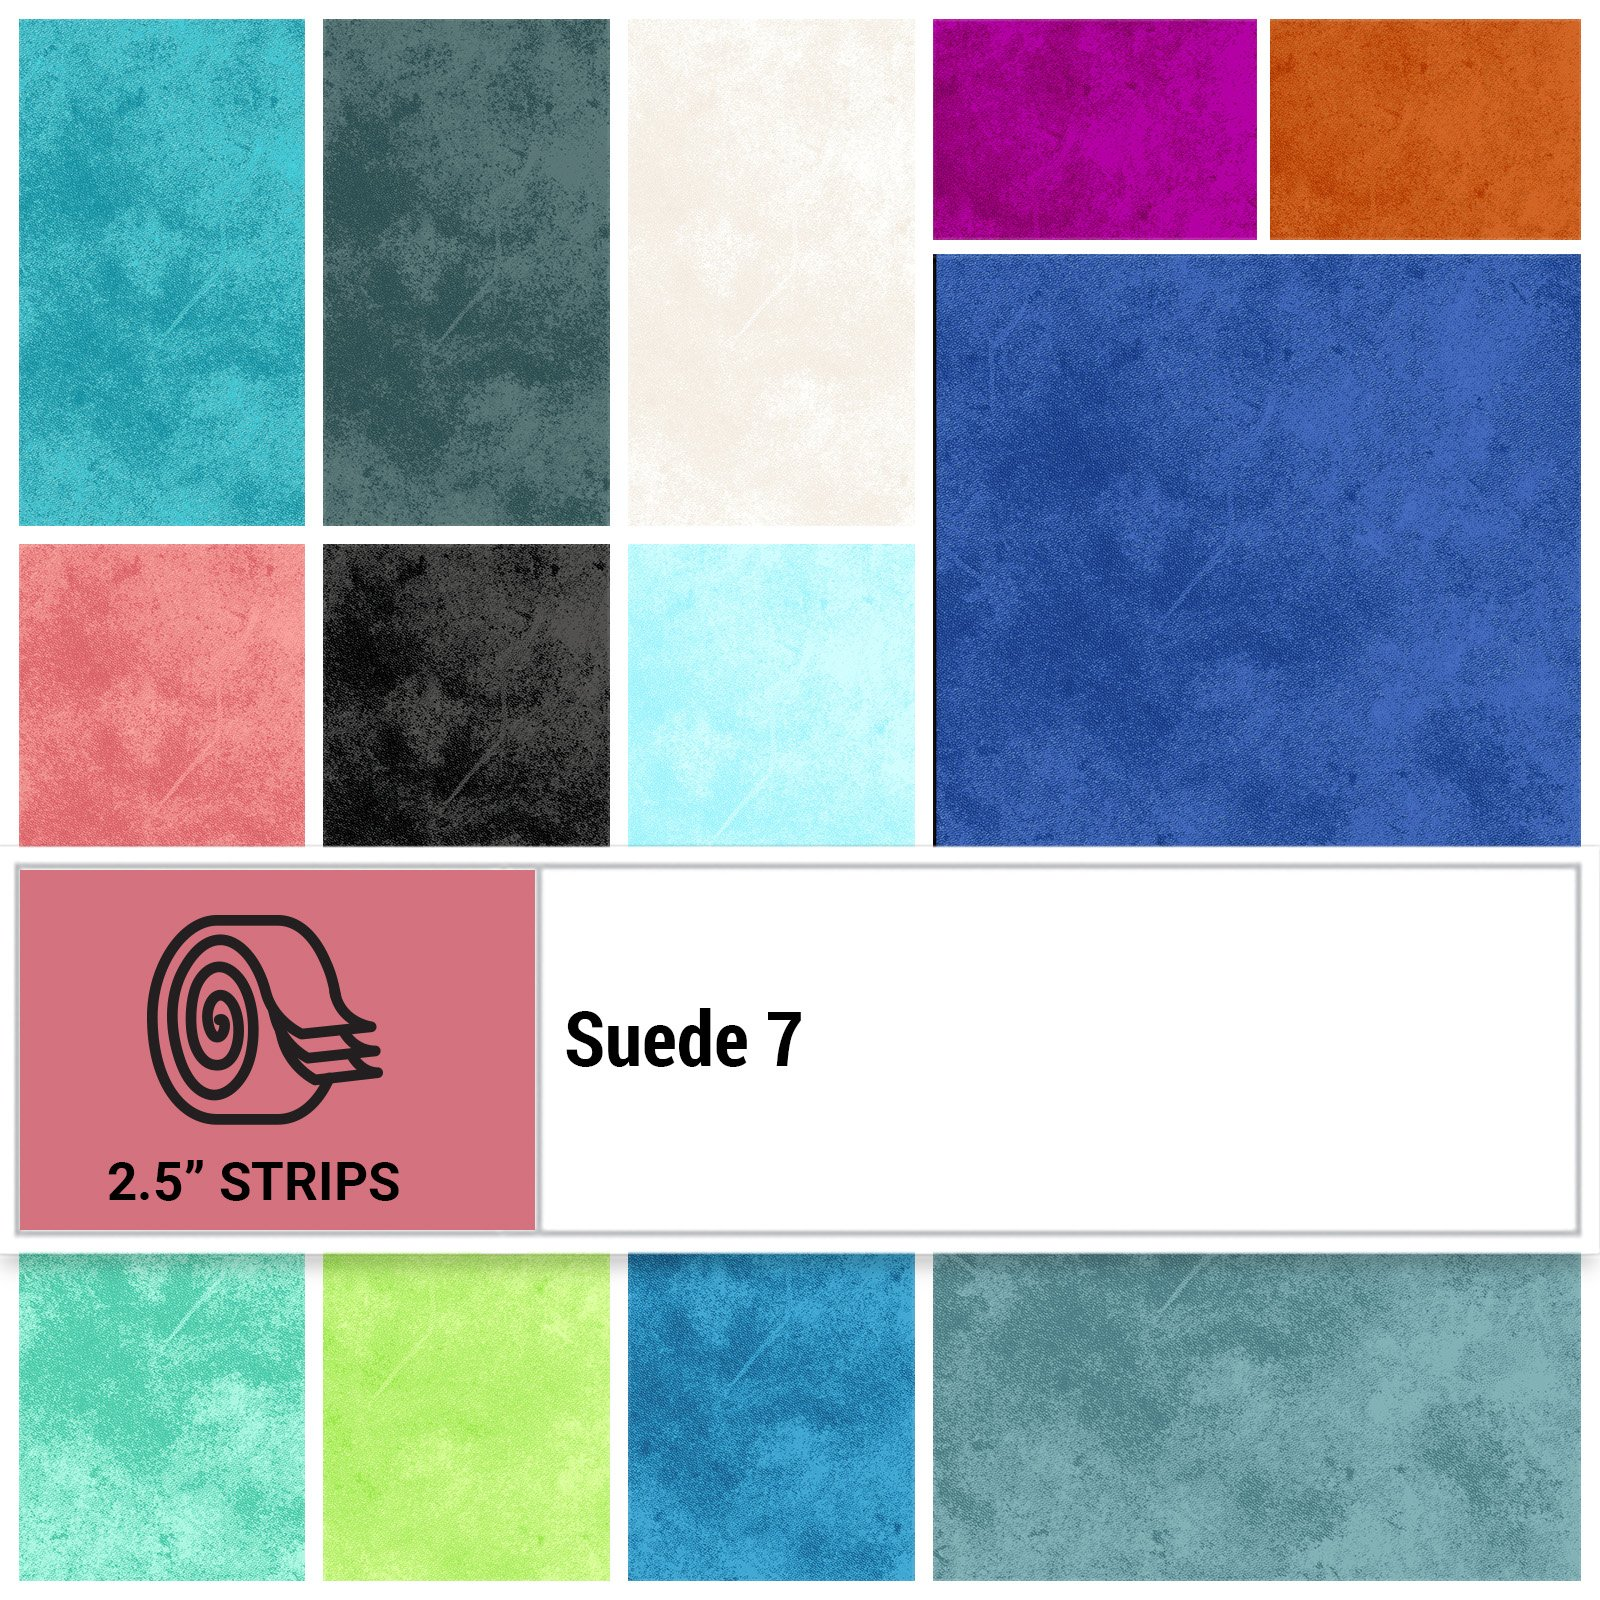 SUE7-STRIPS - SUEDE 7 2.5 STRIP ROLLS BY P&B BOUTIQUE 40PCS - ARRIVING IN AUGUST 2021